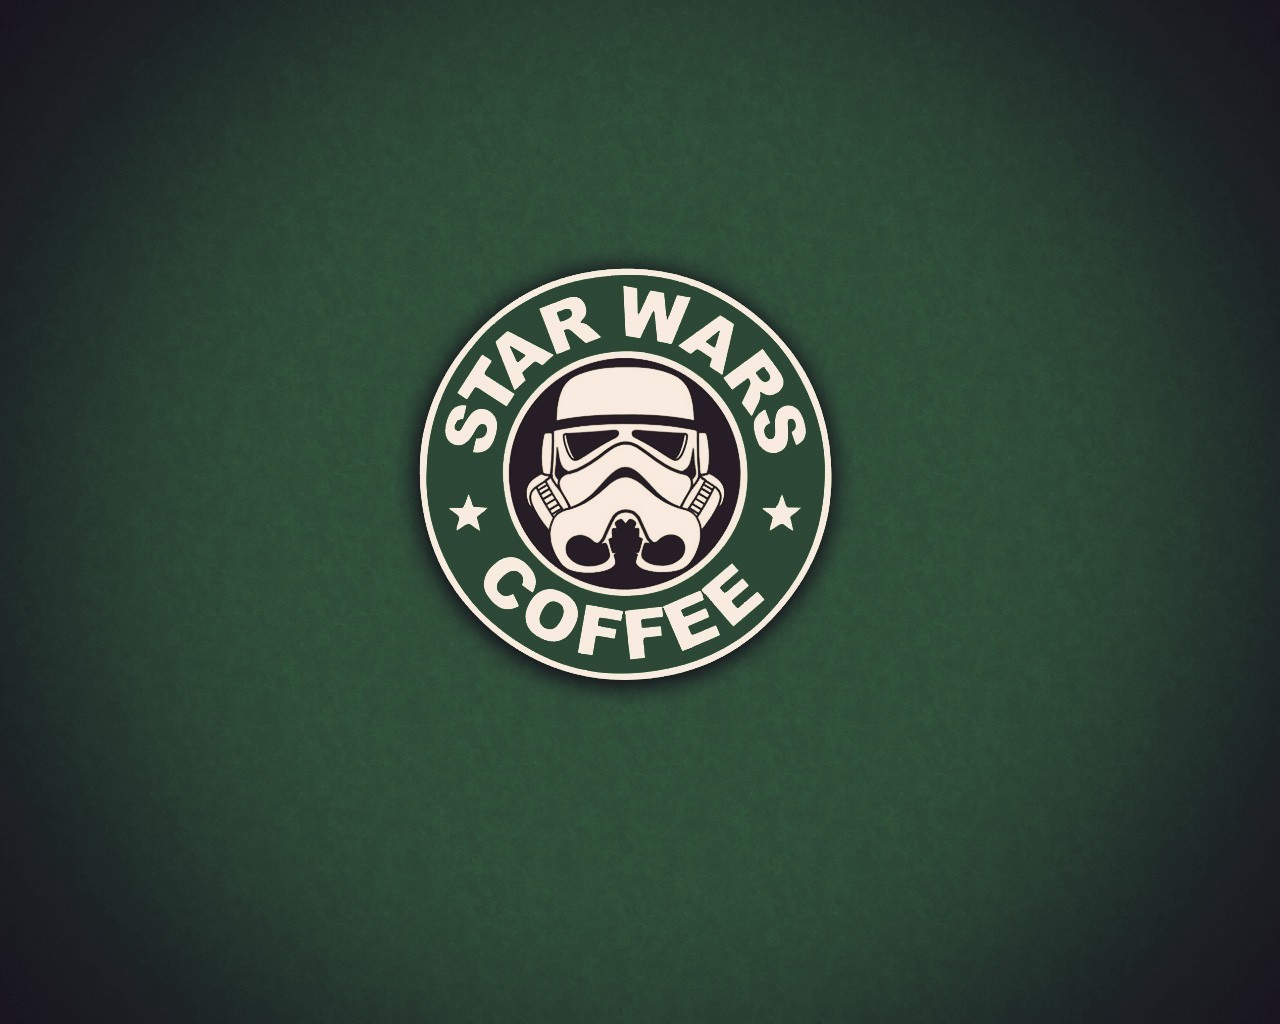 Favori Star wars stormtroopers coffee starbucks wallpaper | AllWallpaper  PG48